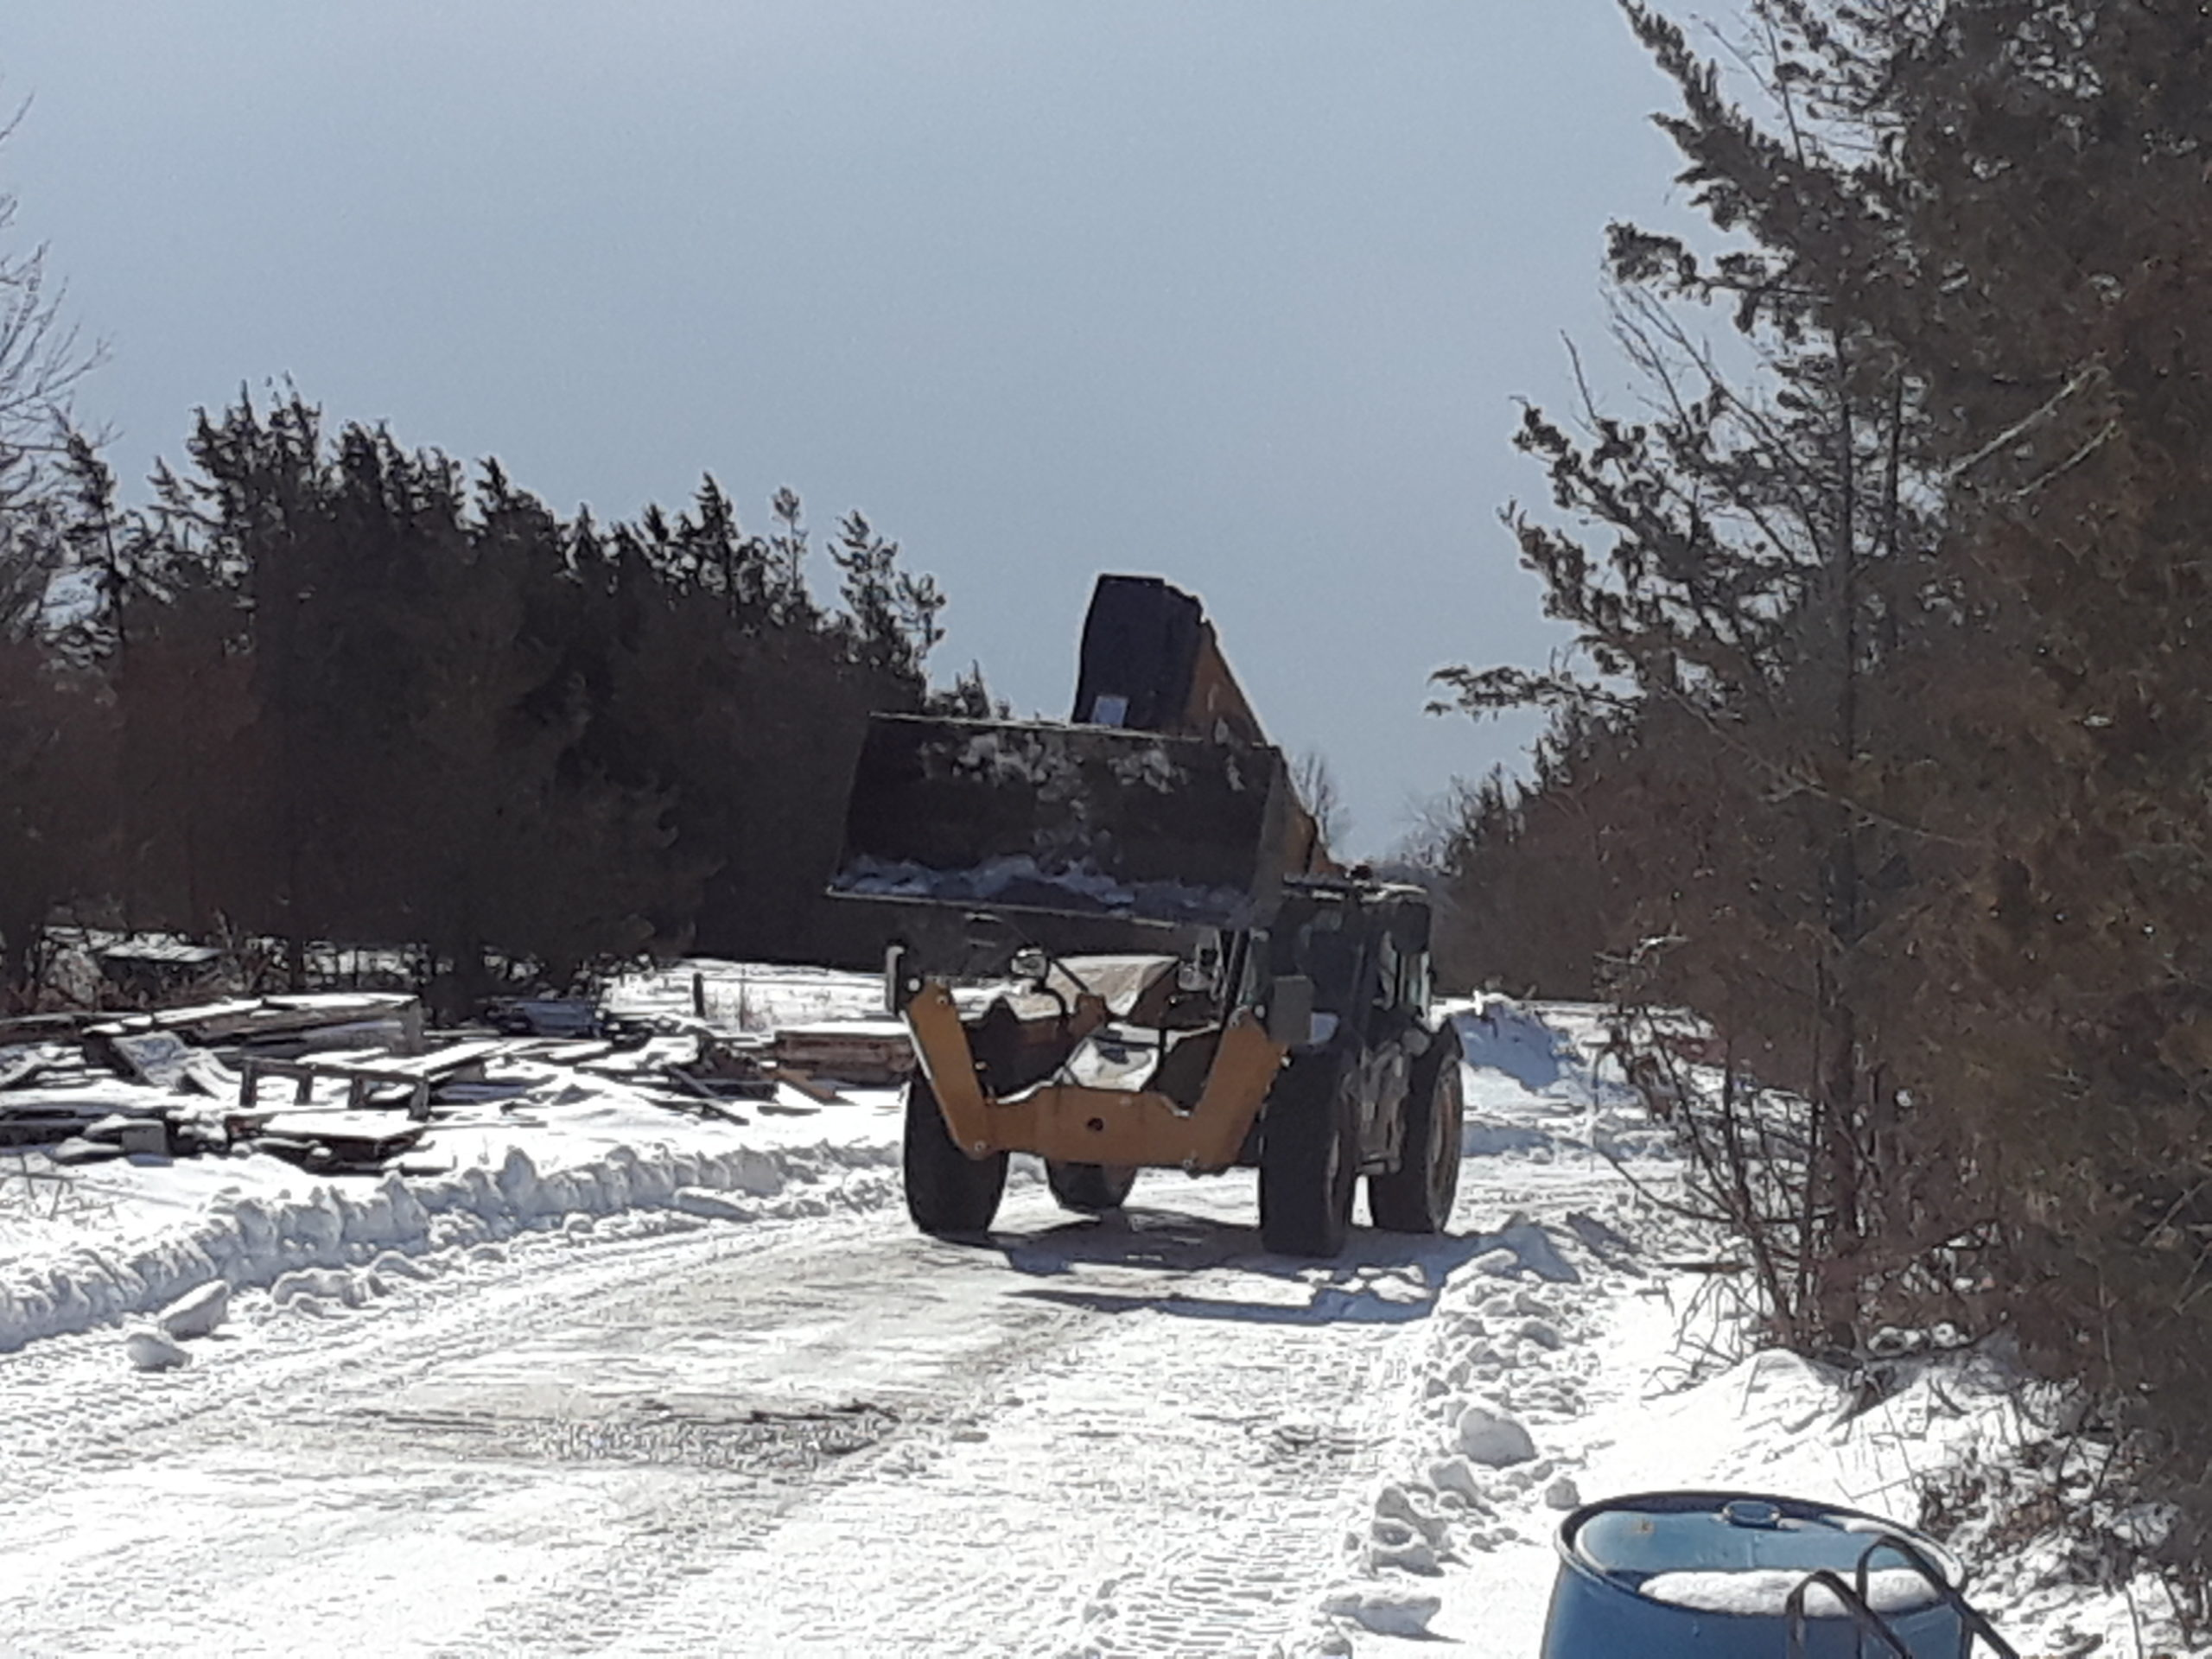 Plowing the snow in the construction yard